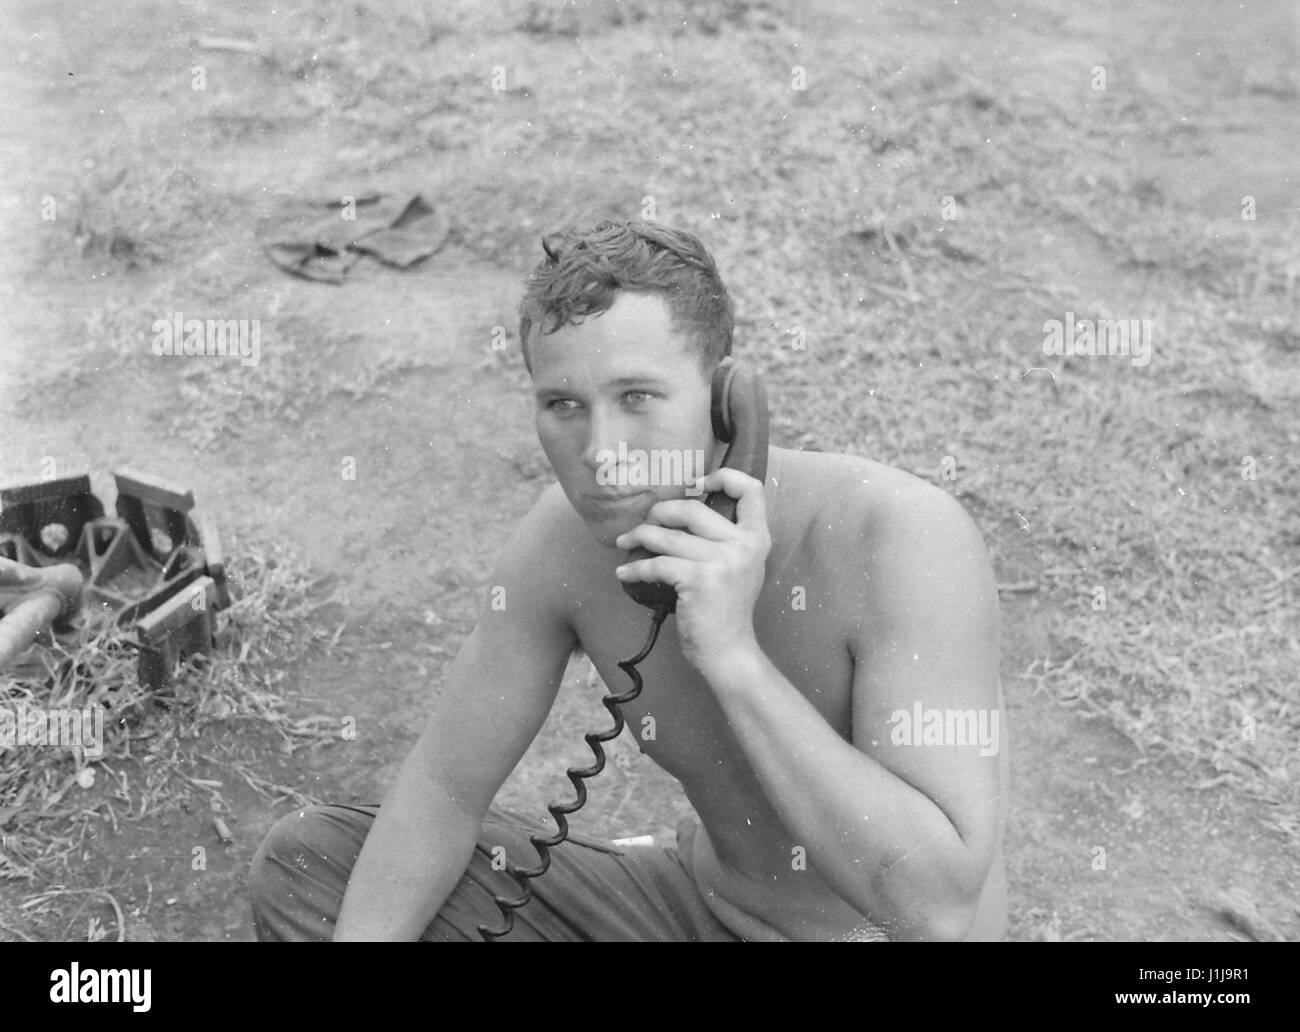 A shirtless United States soldier sits on the ground and speaks on a portable radio during the Vietnam War, Vietnam, - Stock Image